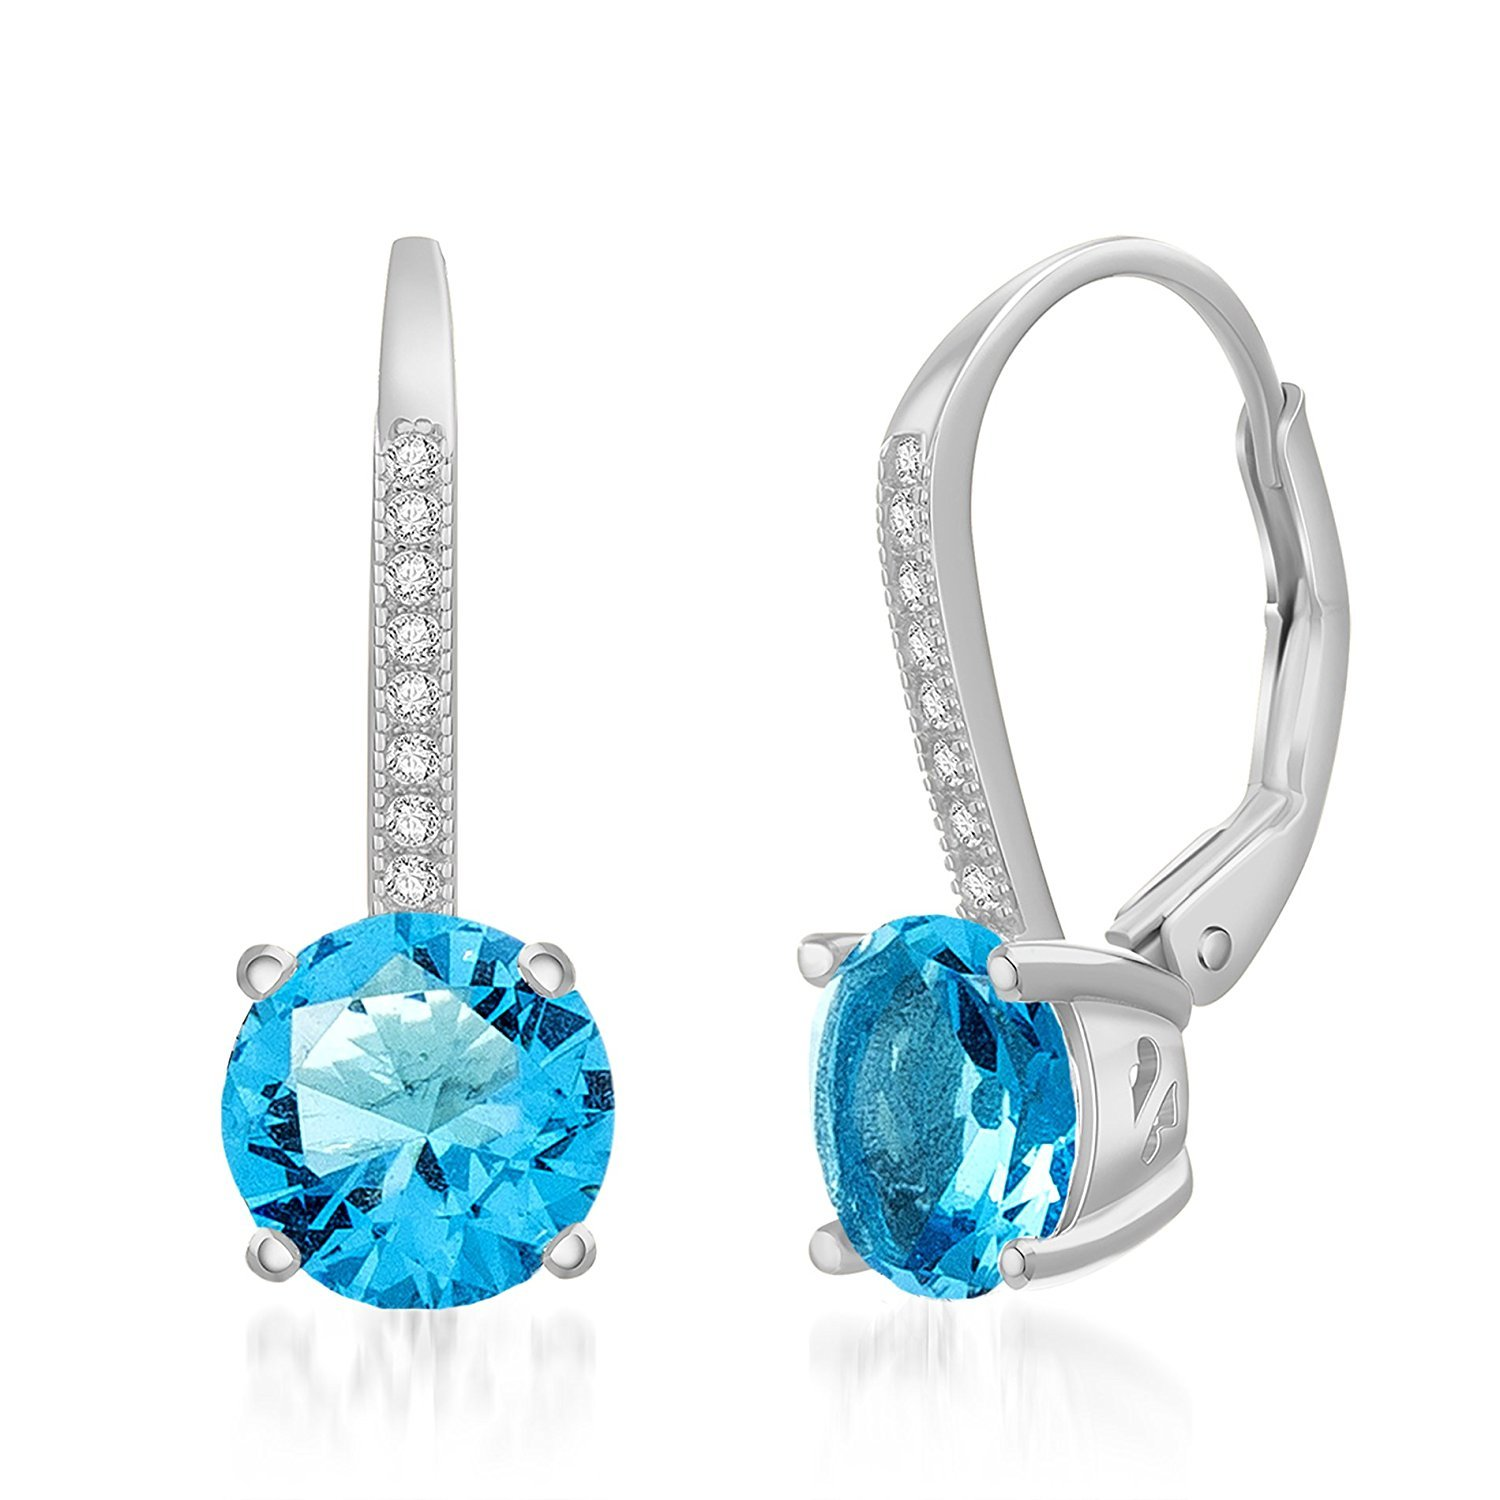 Lesa Michele Womens Round Cubic Zirconia Drop Lever Back Bridal Gift Earrings in Sterling Silver Nes Jewelry US_B076ZN35WK